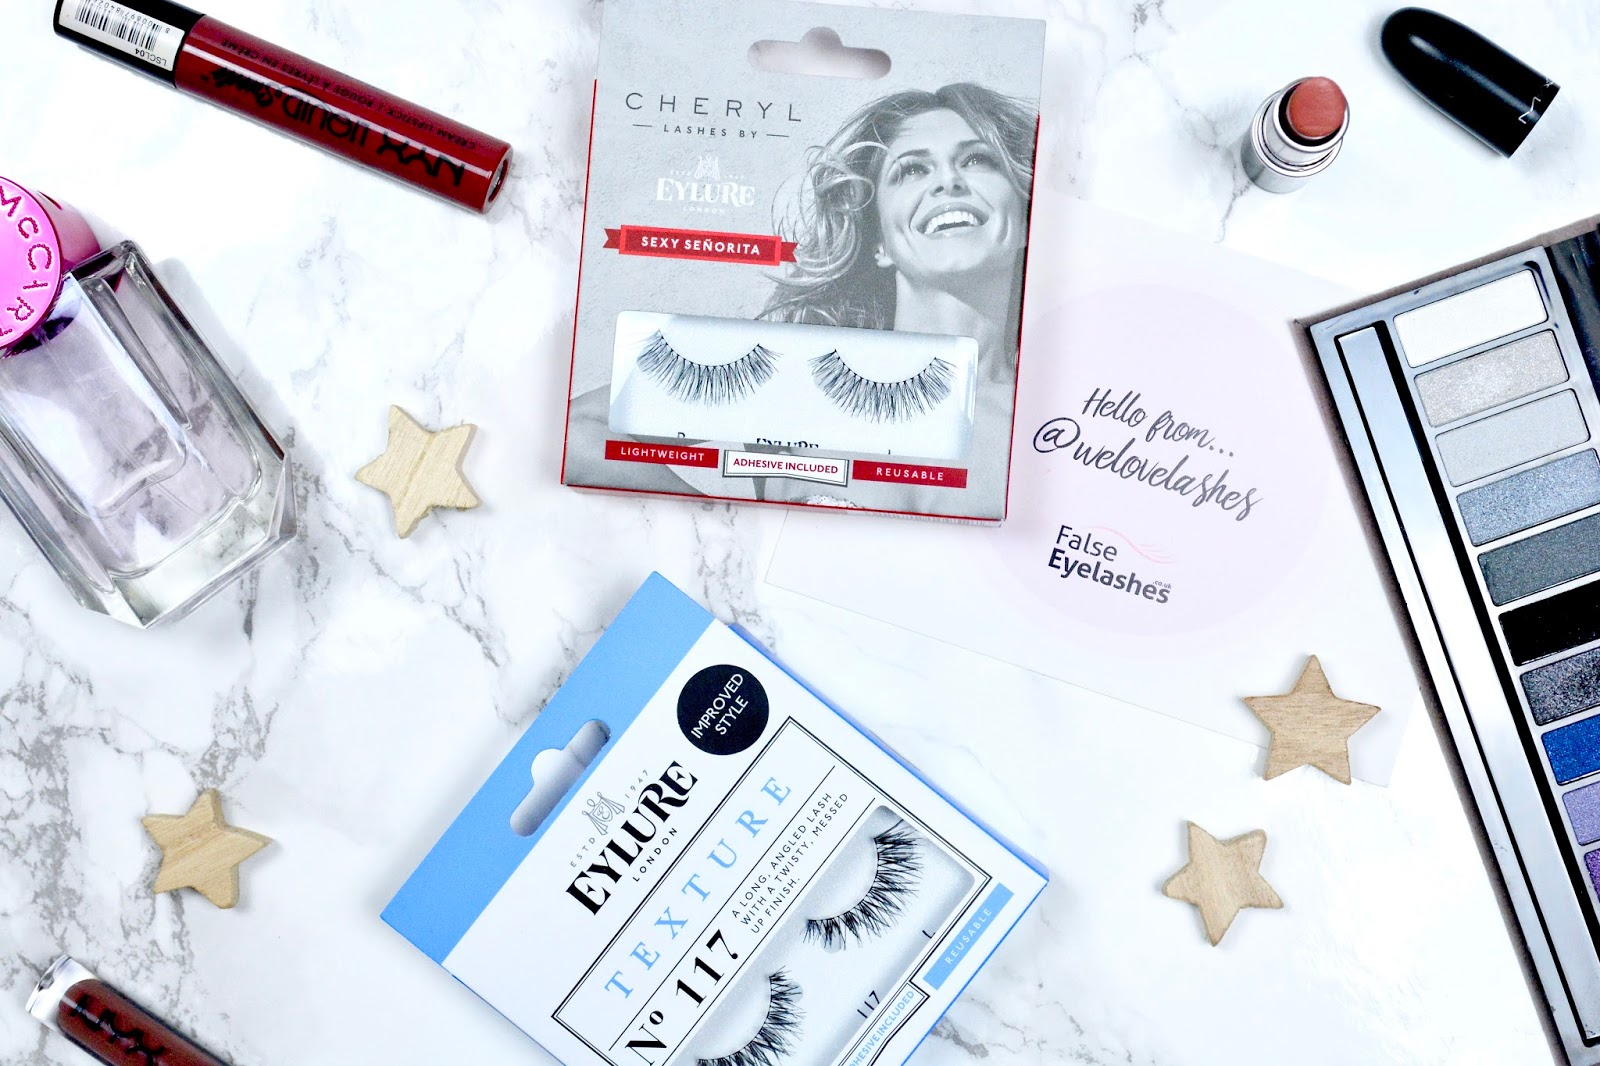 We Love Lashes, False Eyelashes, Lashes, Falsies, Eylure, Eylure Texture Lashes, Eylure Cheryl Lashes, False Lash Review, Beauty